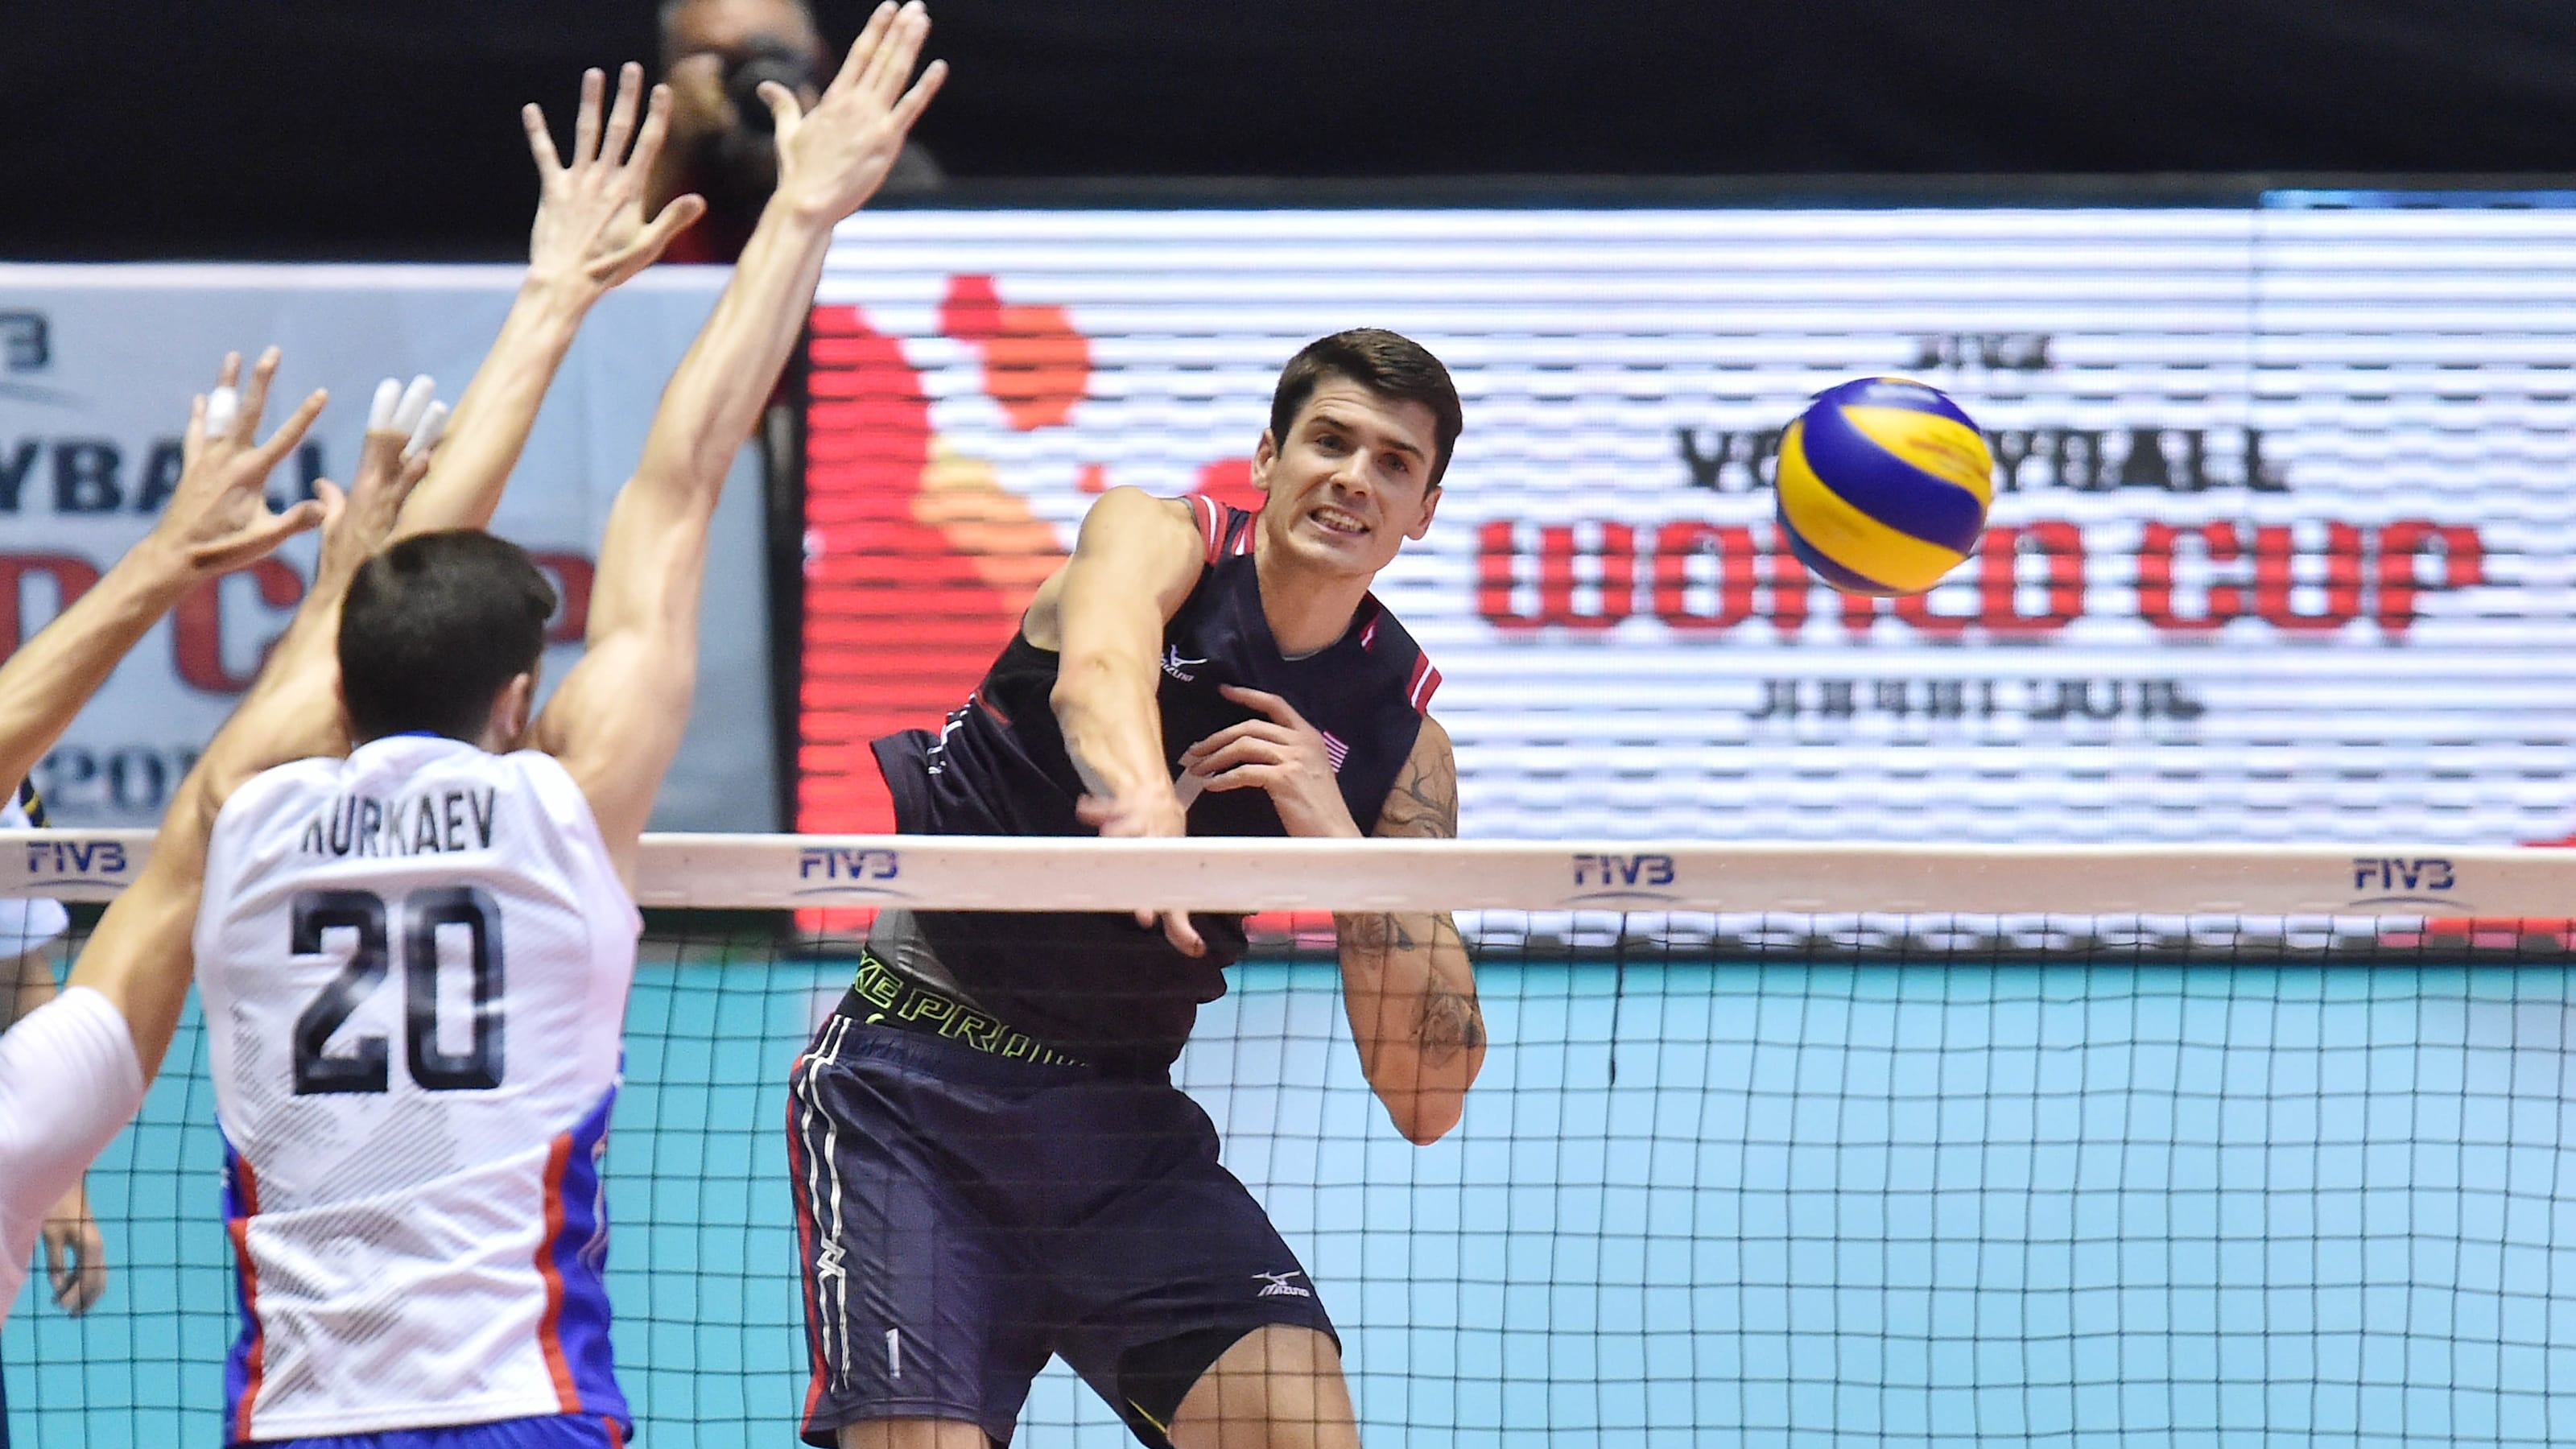 Volleyball World Cup: Know the history, format and winners list